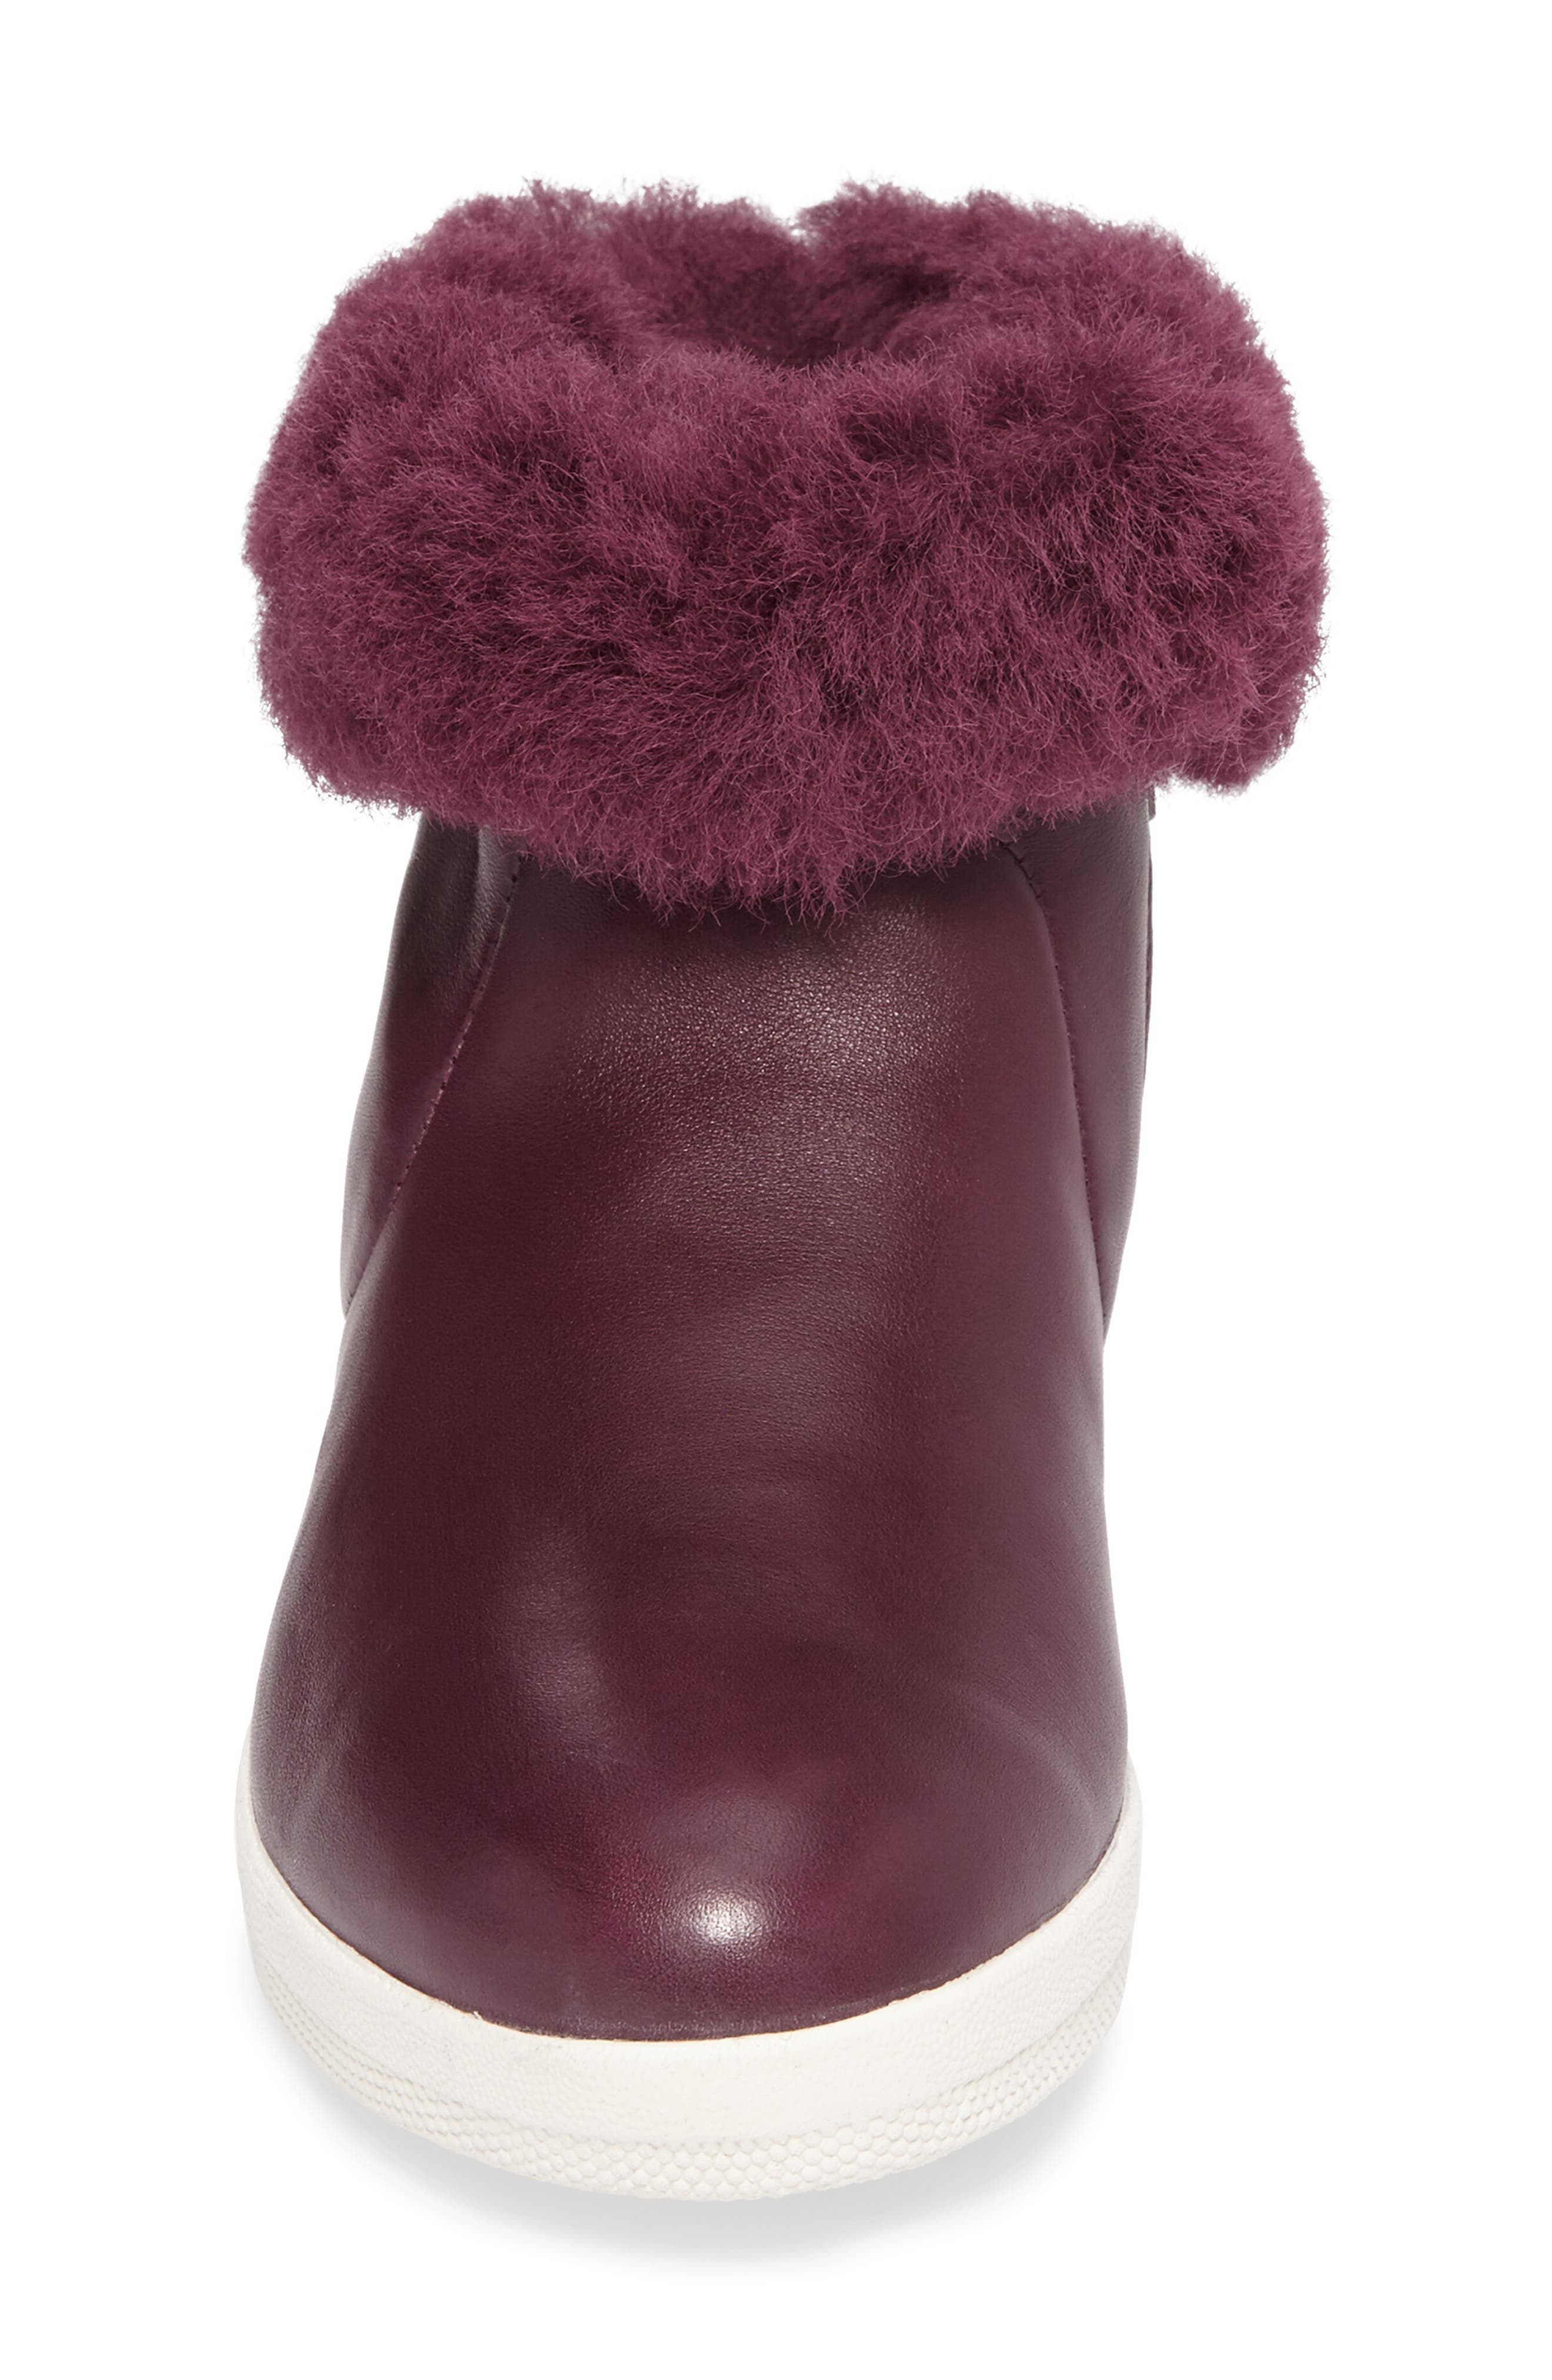 Skatebootie<sup>™</sup> with Genuine Shearling Cuff,                             Alternate thumbnail 4, color,                             Deep Plum